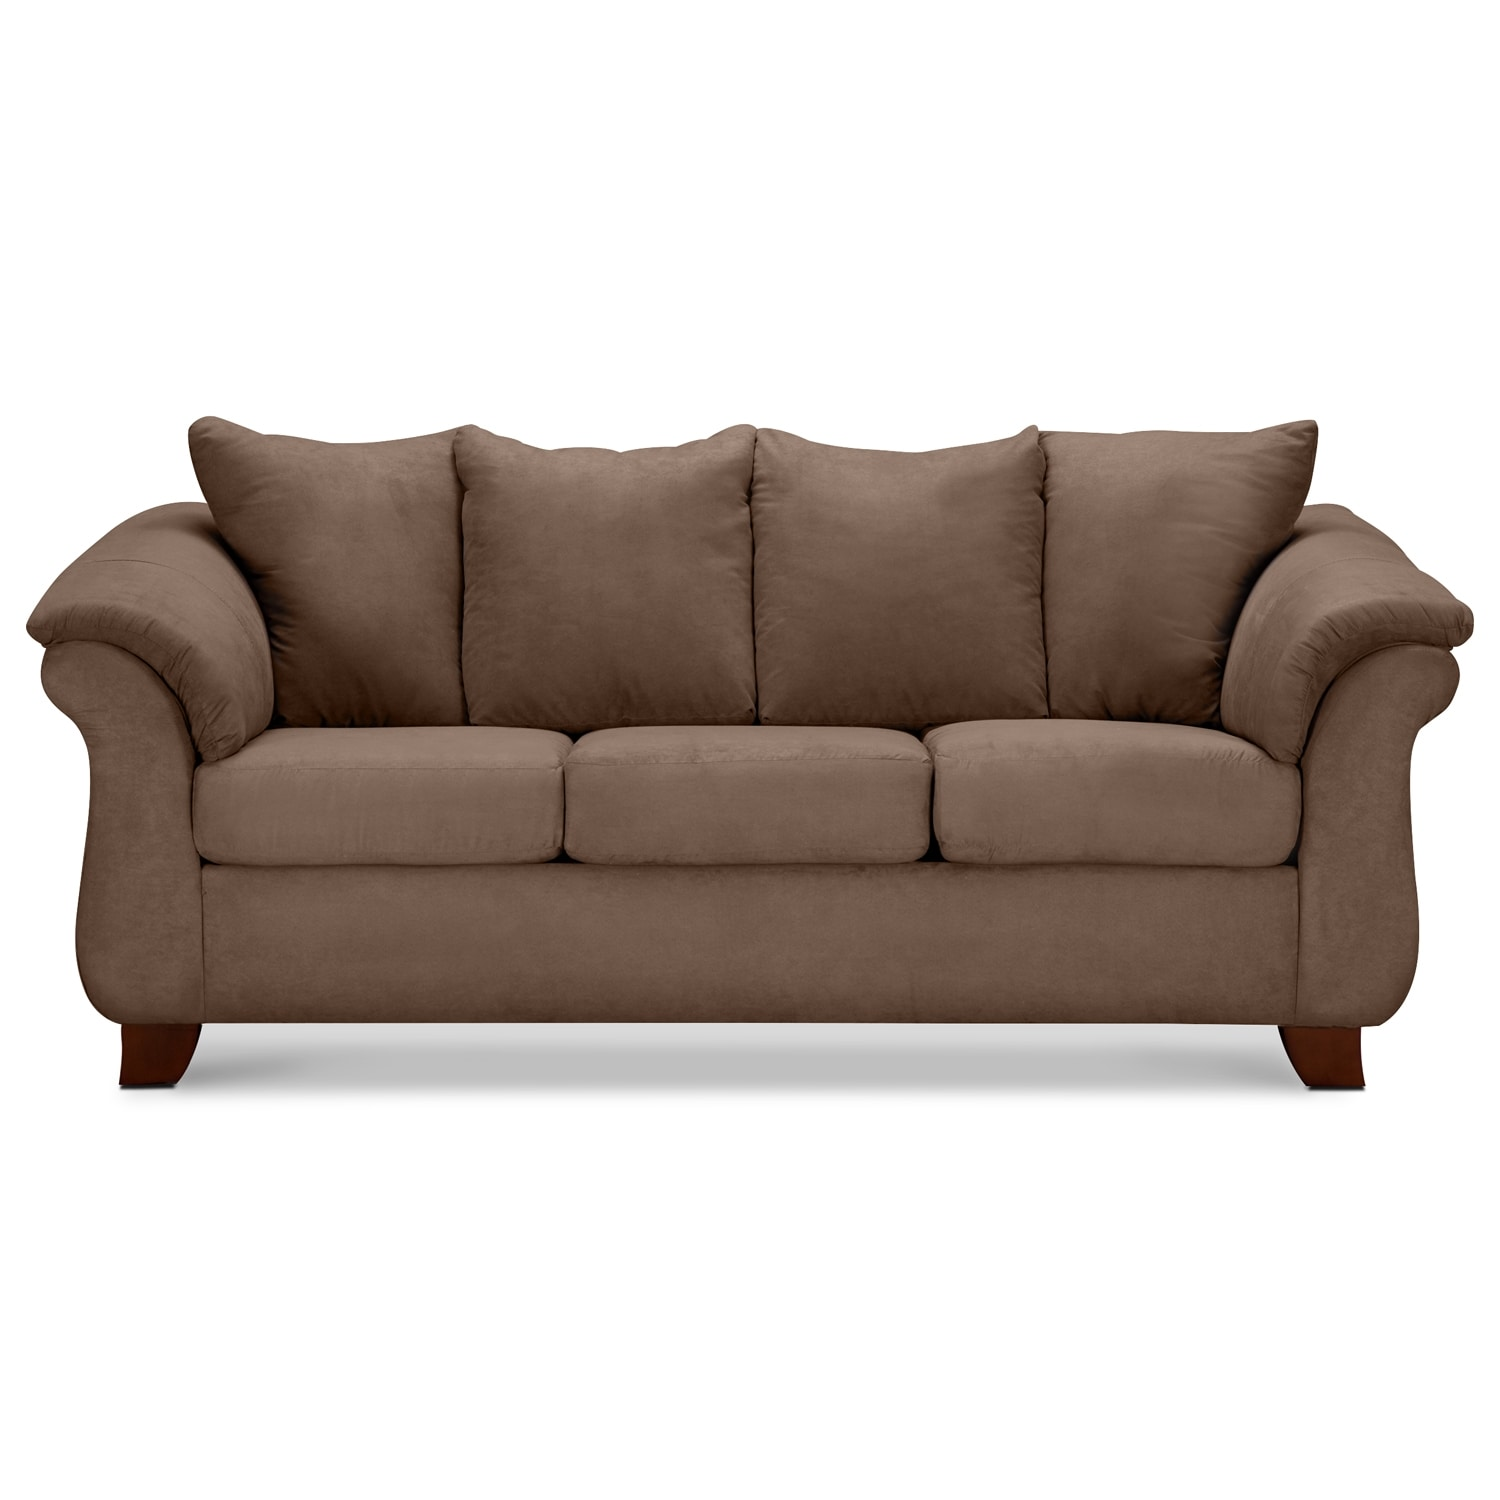 Adrian sofa taupe value city furniture for Divan furniture